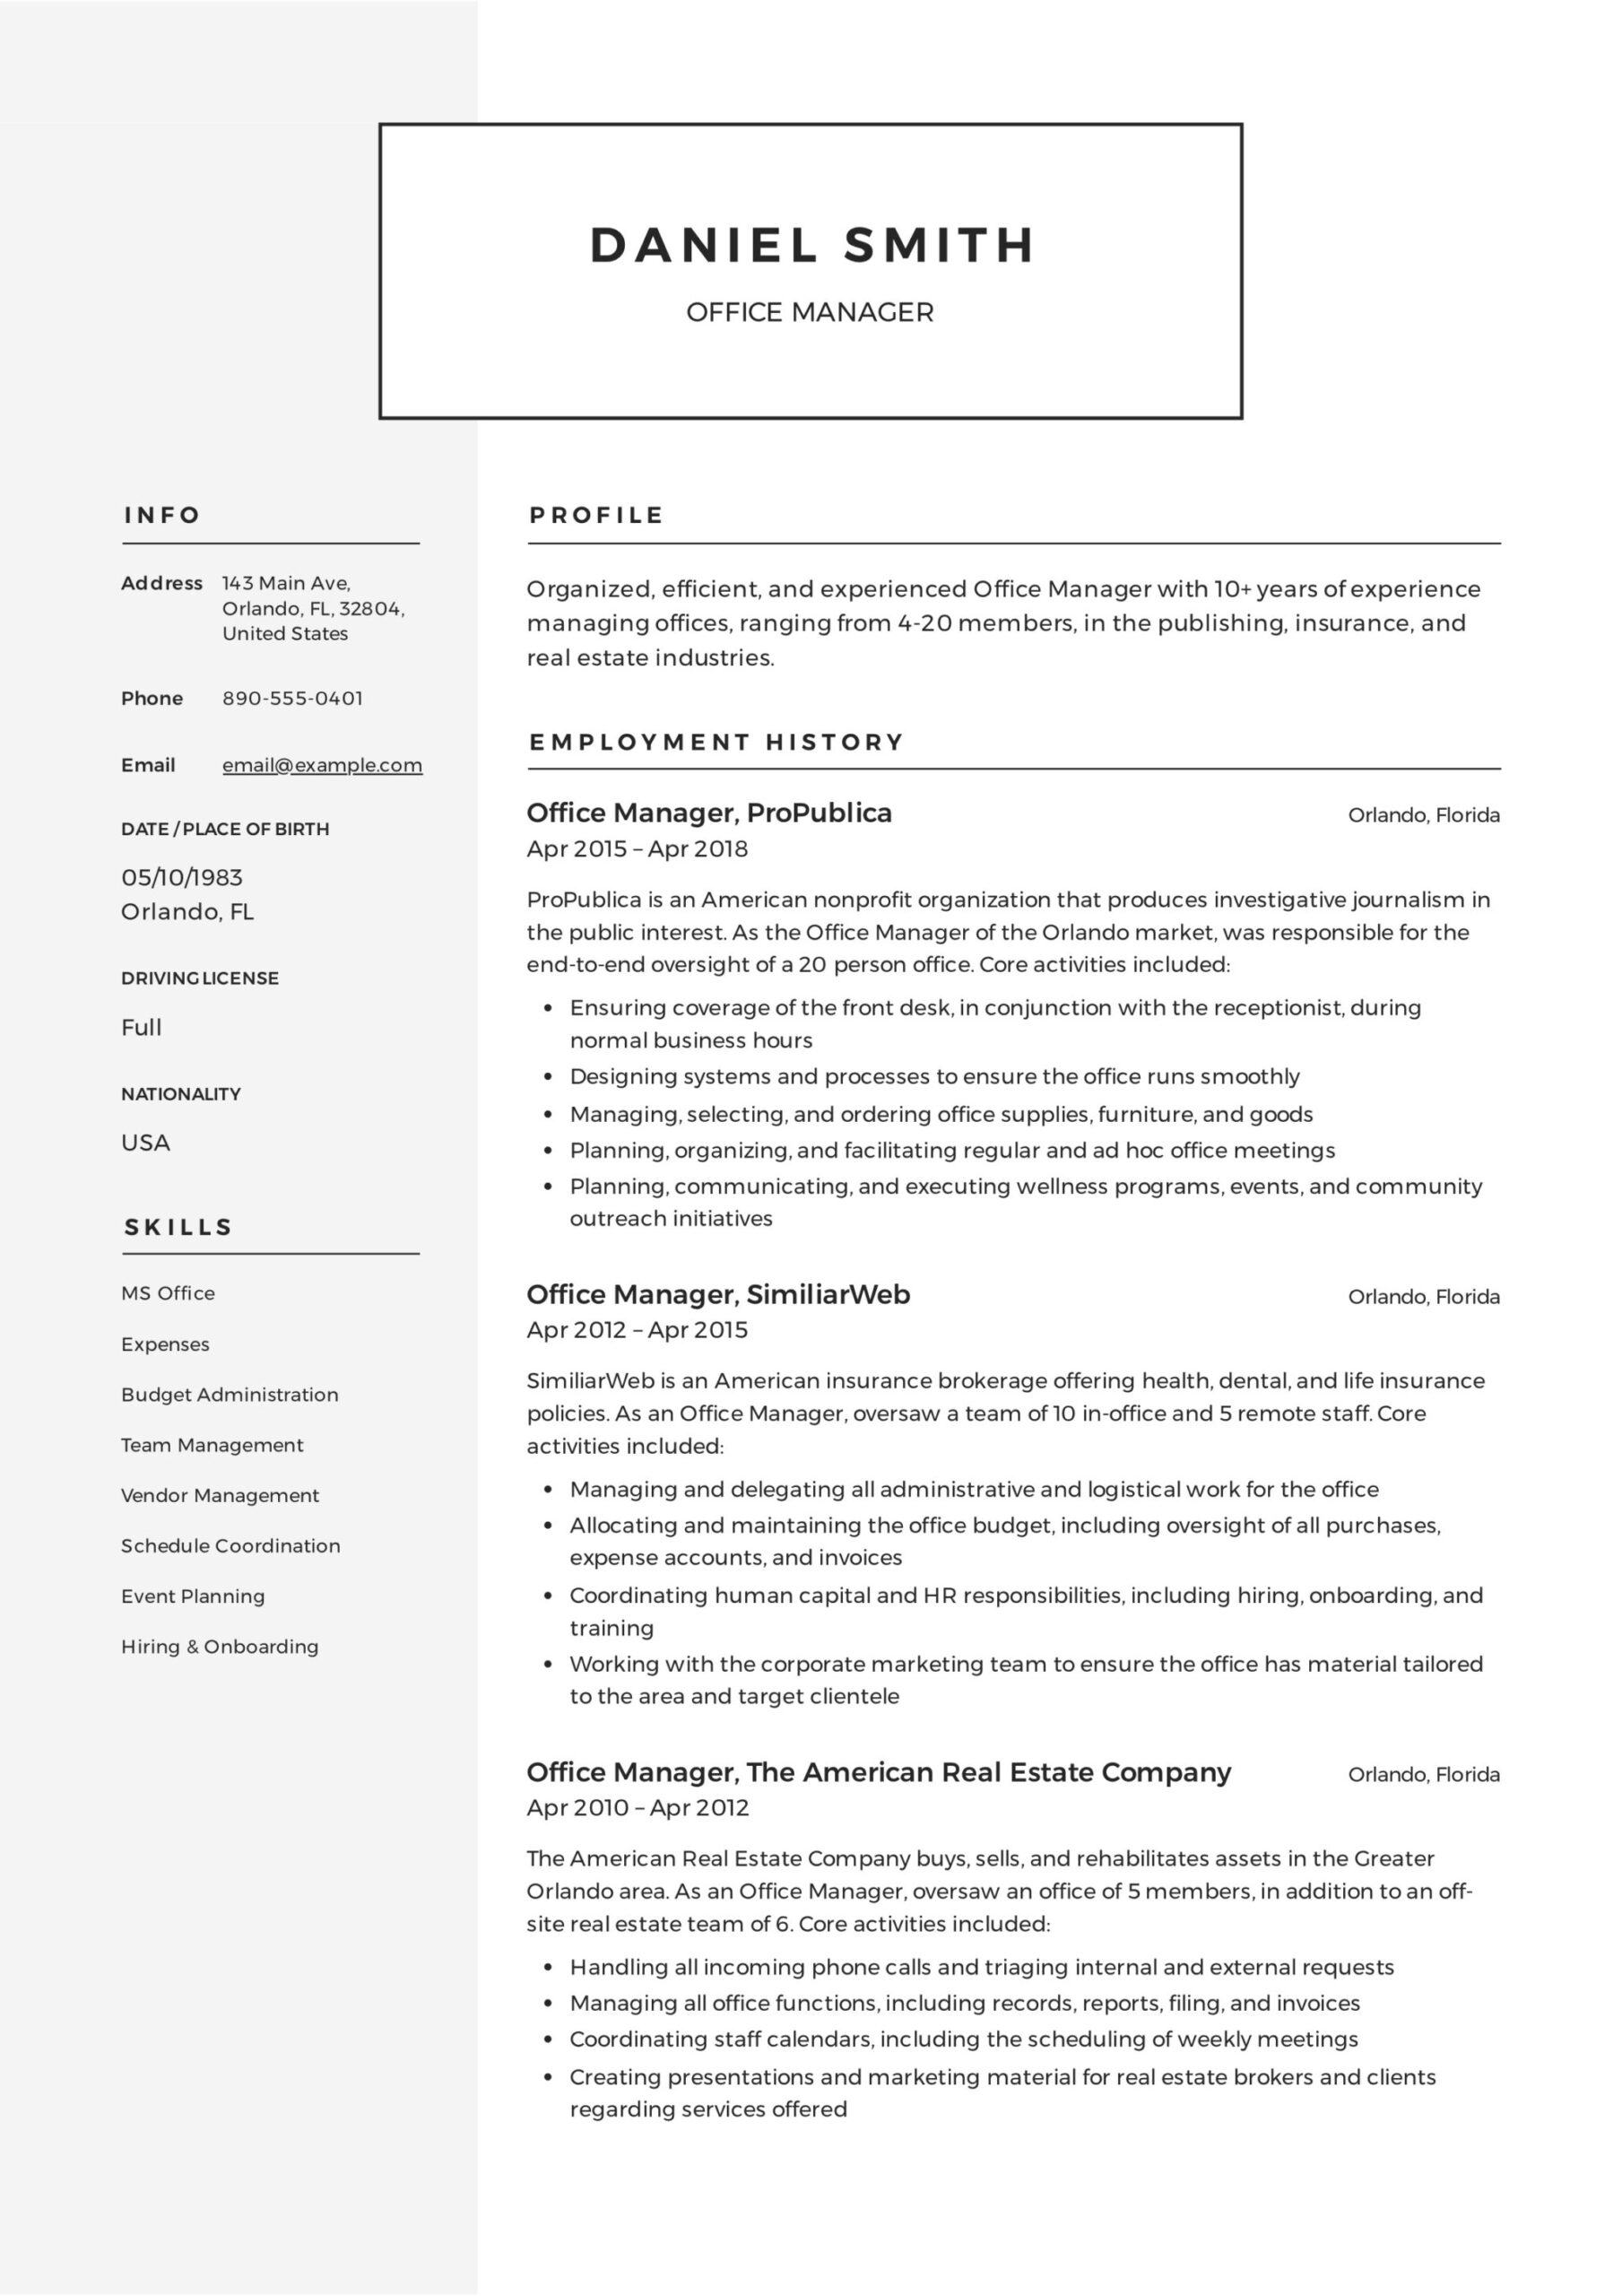 office manager resume guide samples pdf template for position sample quality engineer Resume Resume Template For Manager Position